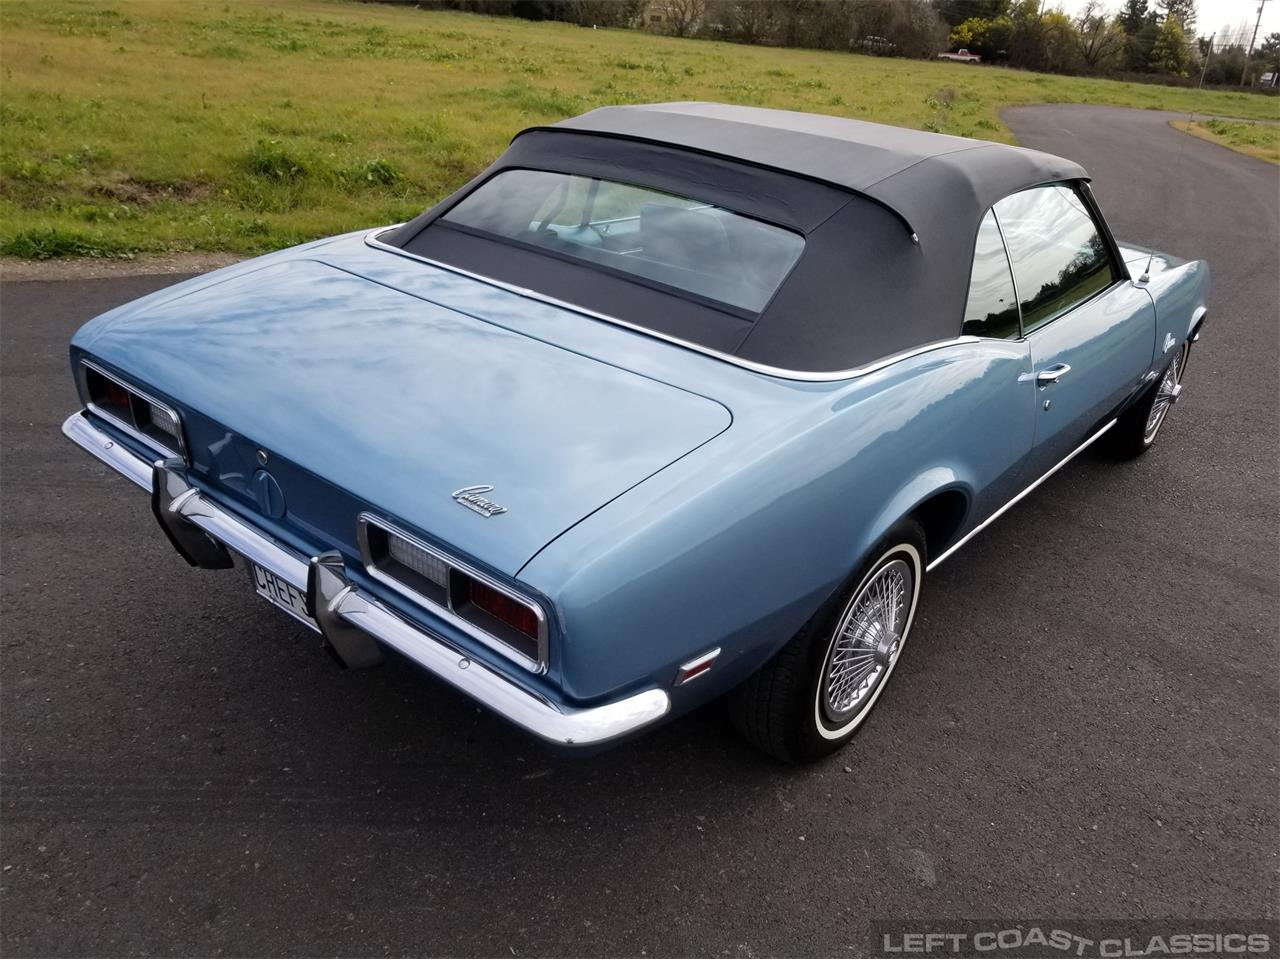 Large Picture of '68 Chevrolet Camaro located in California - $33,900.00 Offered by Left Coast Classics - PNQK